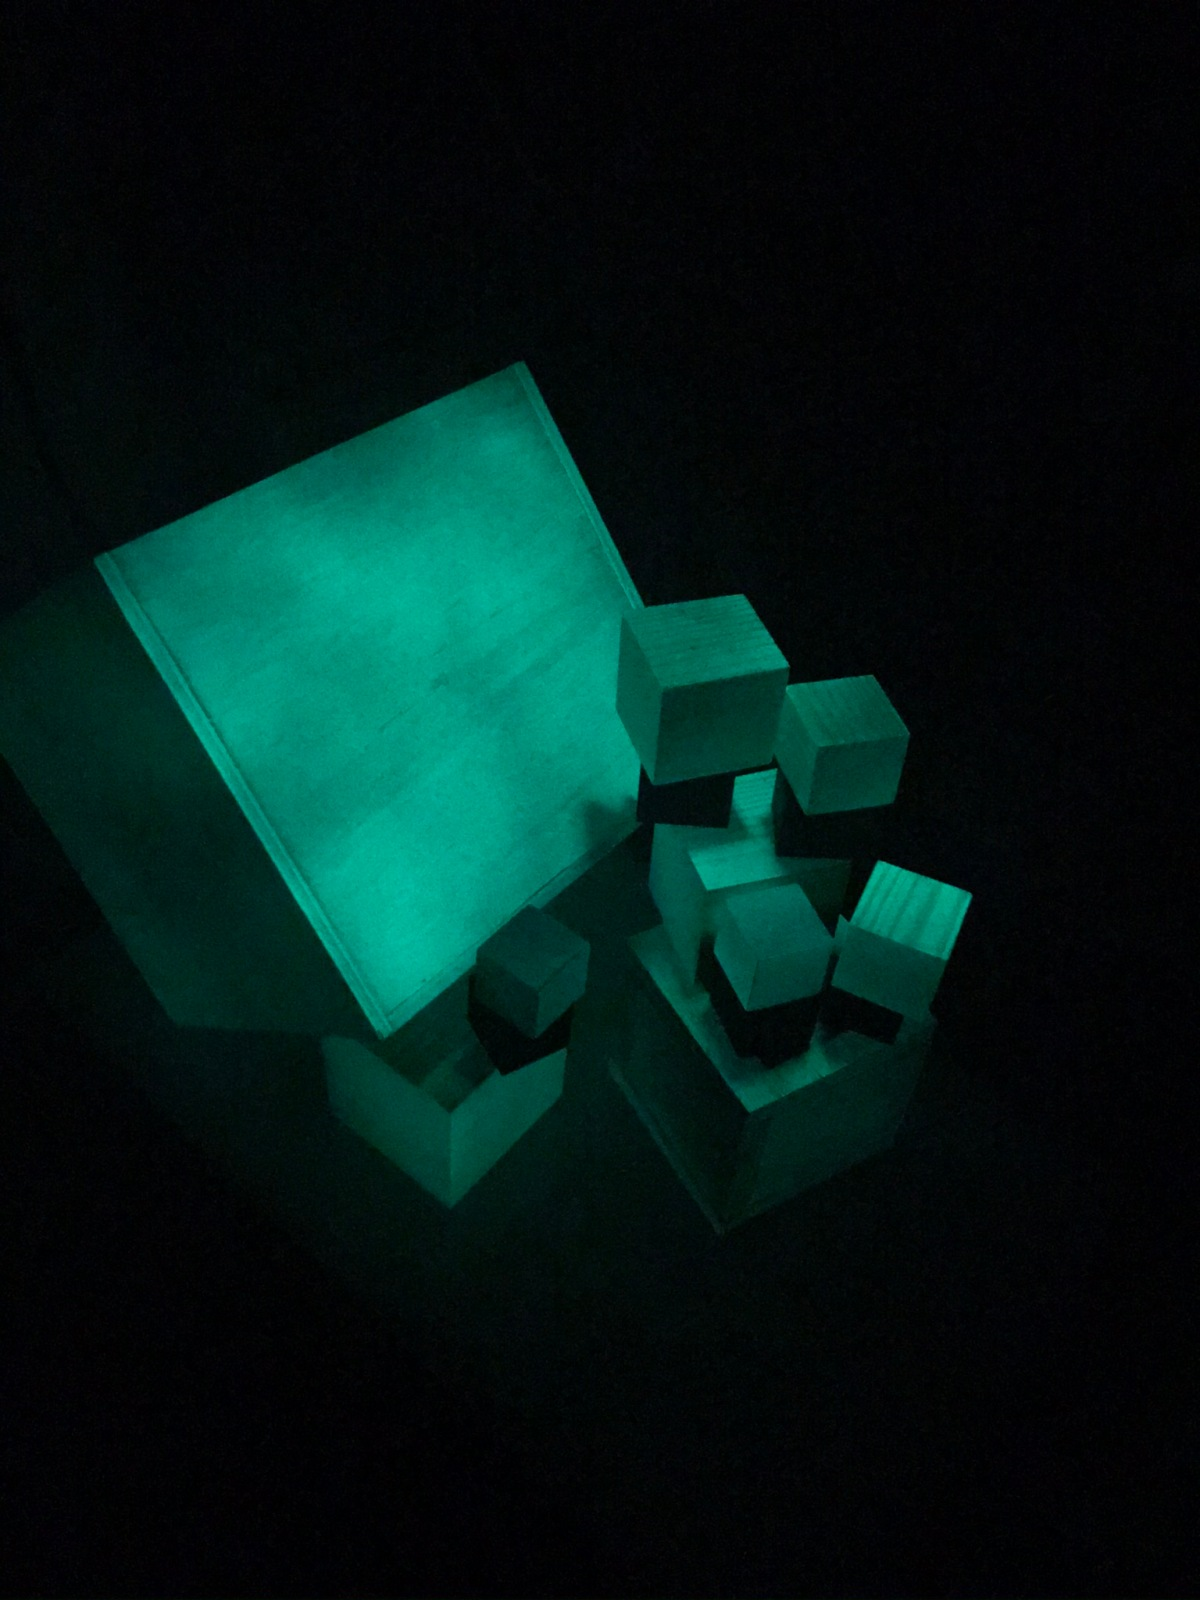 """Painting"" cubes with light"